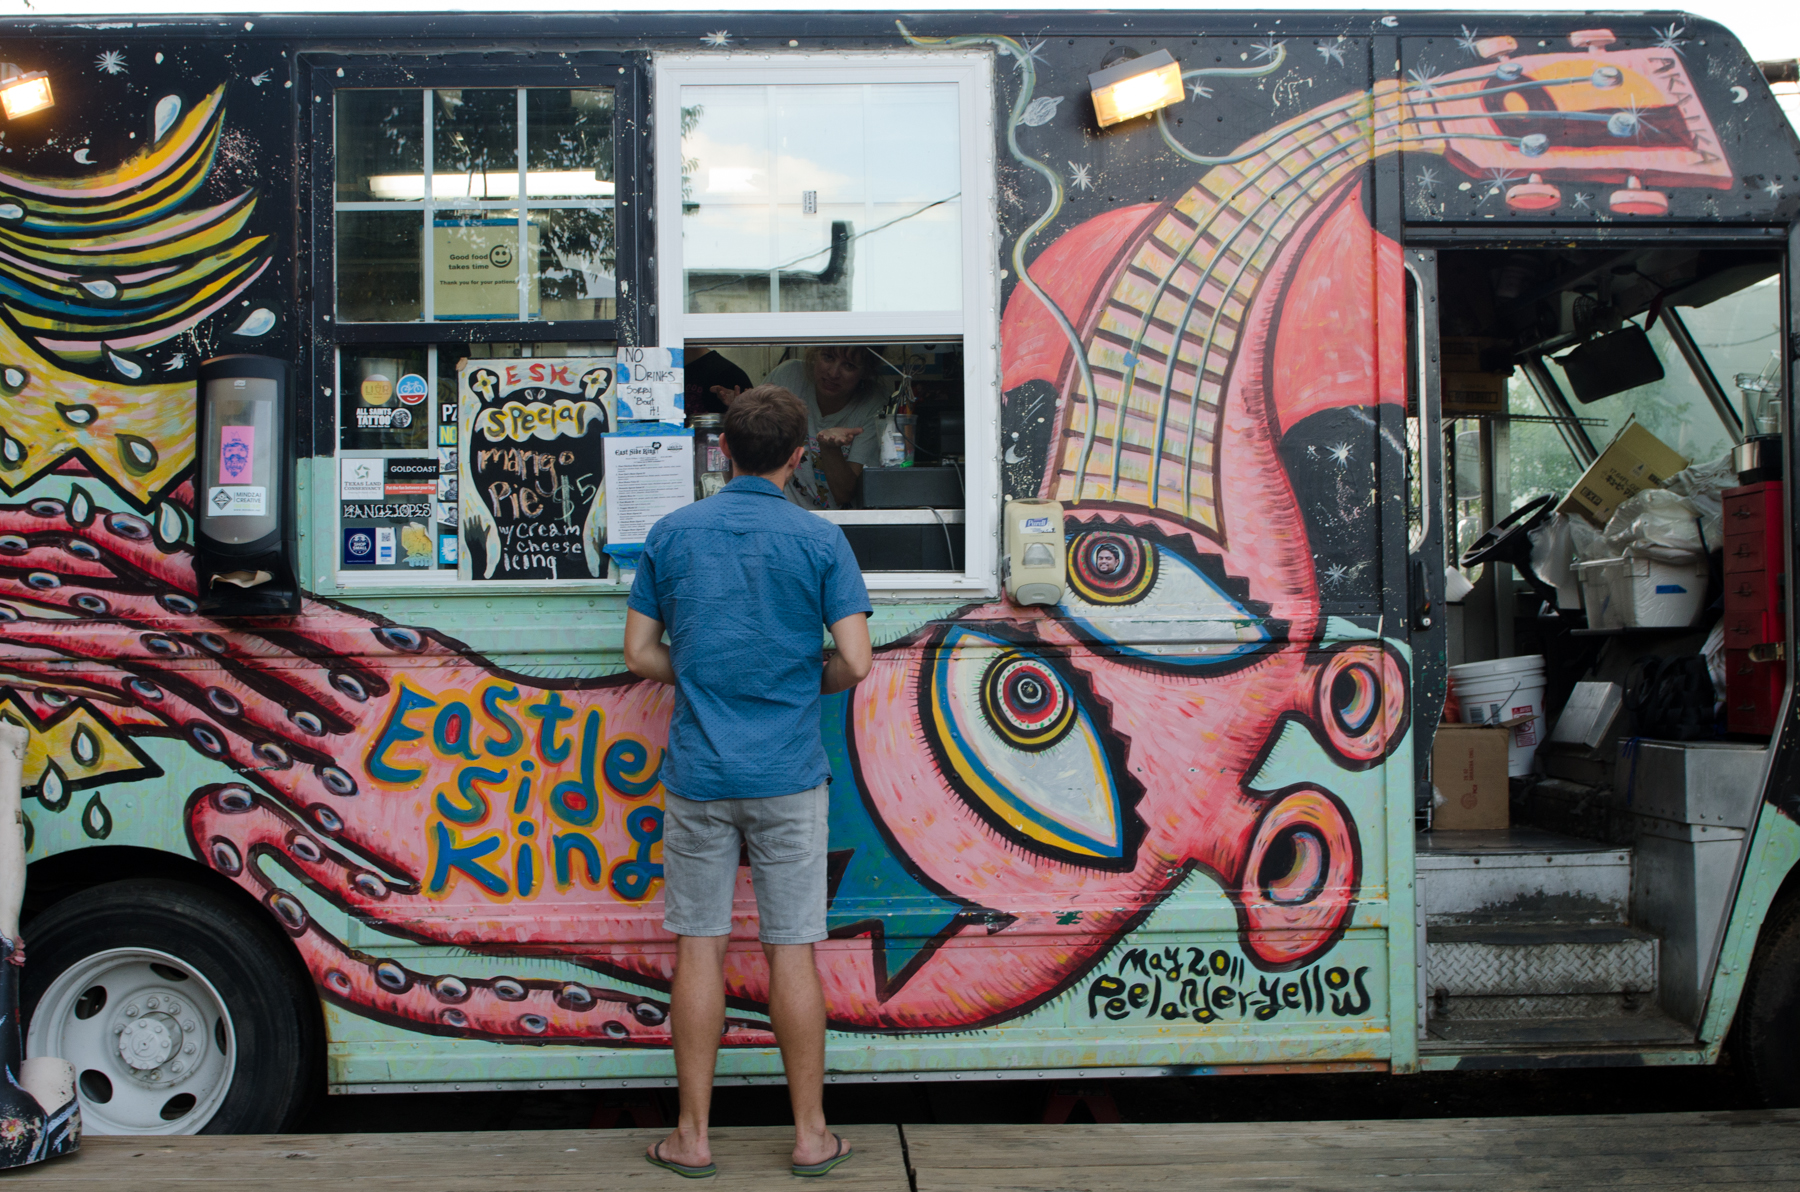 East Side King Food Truck Austin